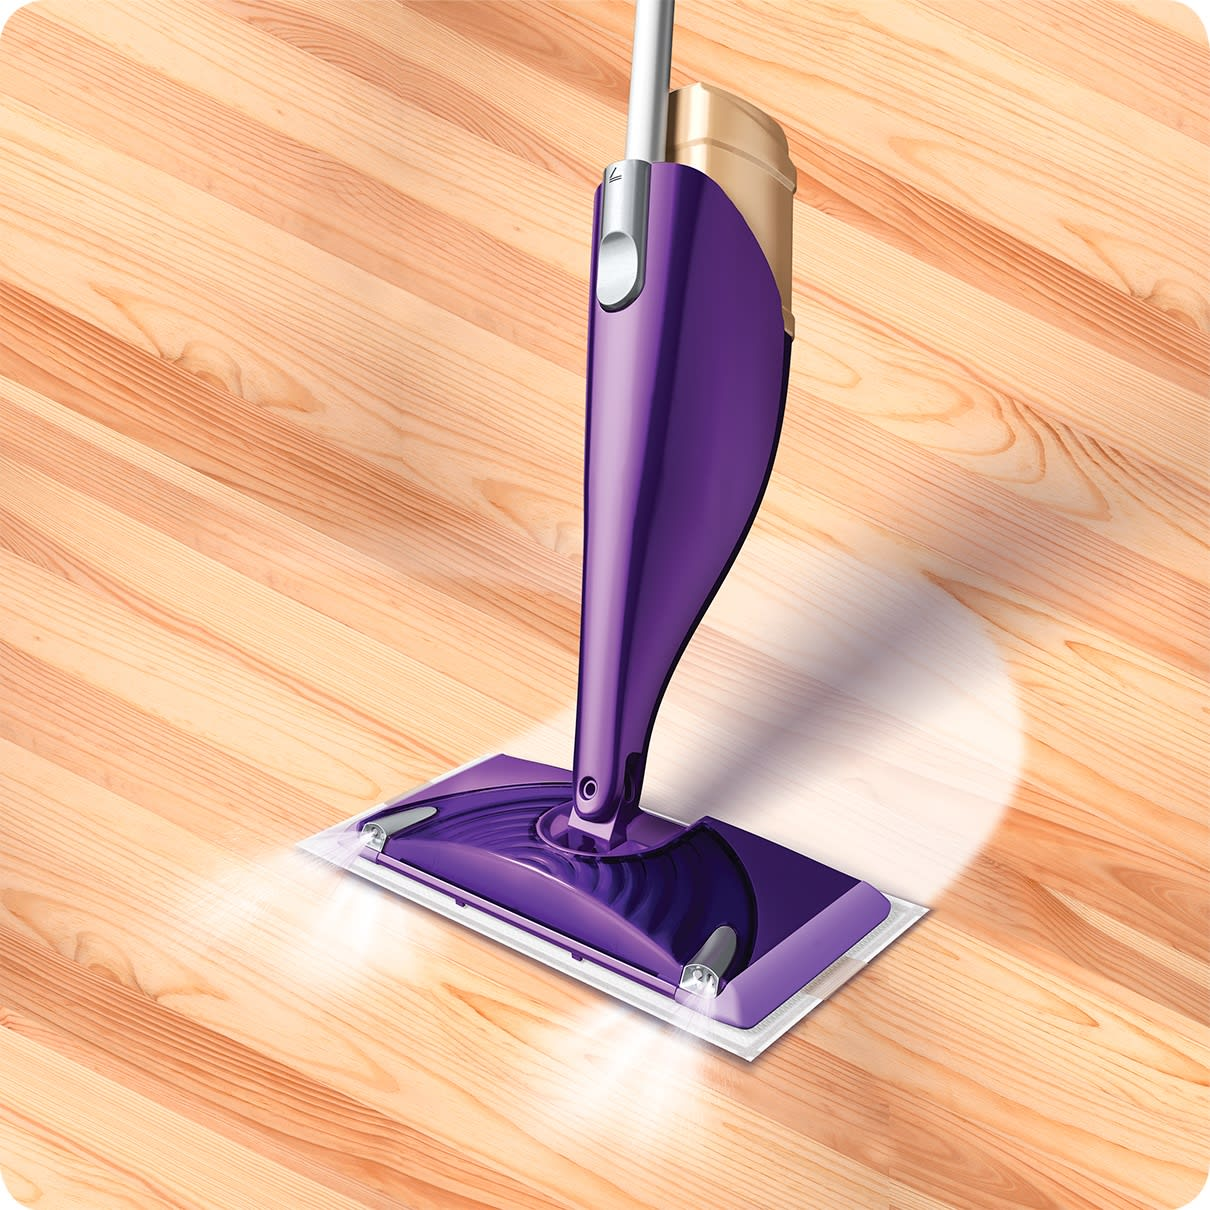 Swiffer WetJet Wood Pad Refill Device In Action